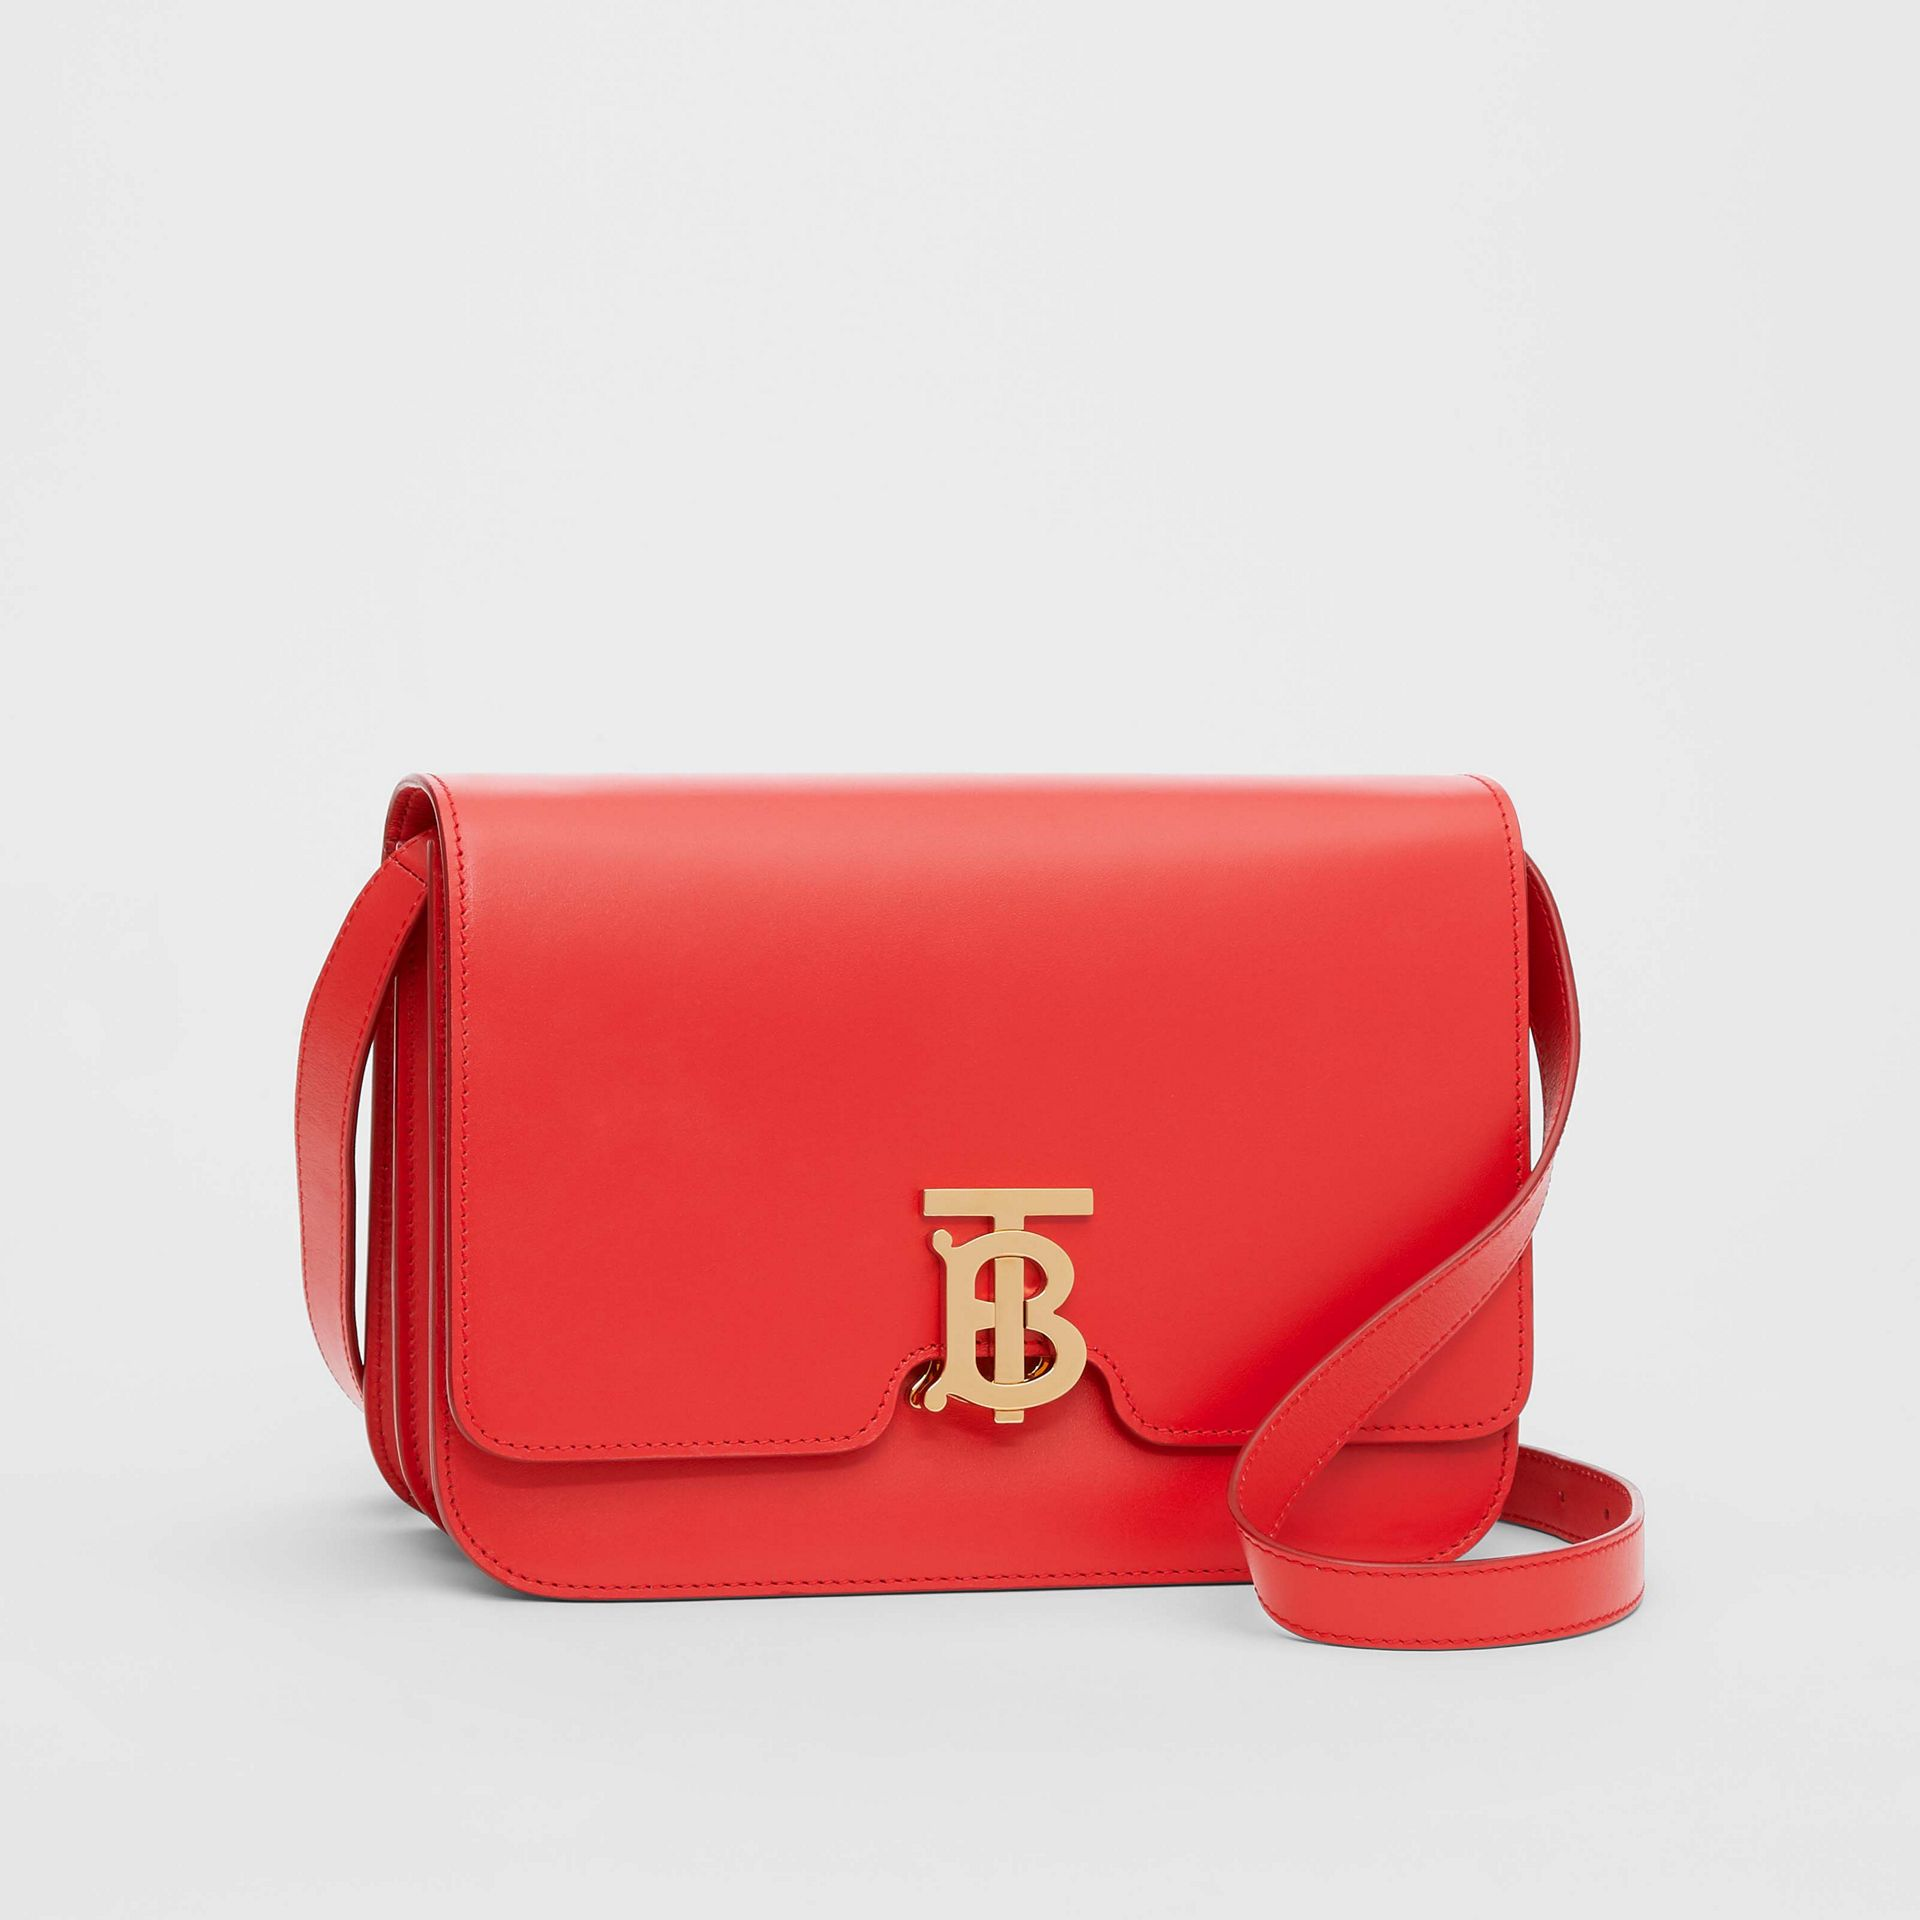 Medium Leather TB Bag in Bright Red - Women | Burberry Australia - gallery image 6